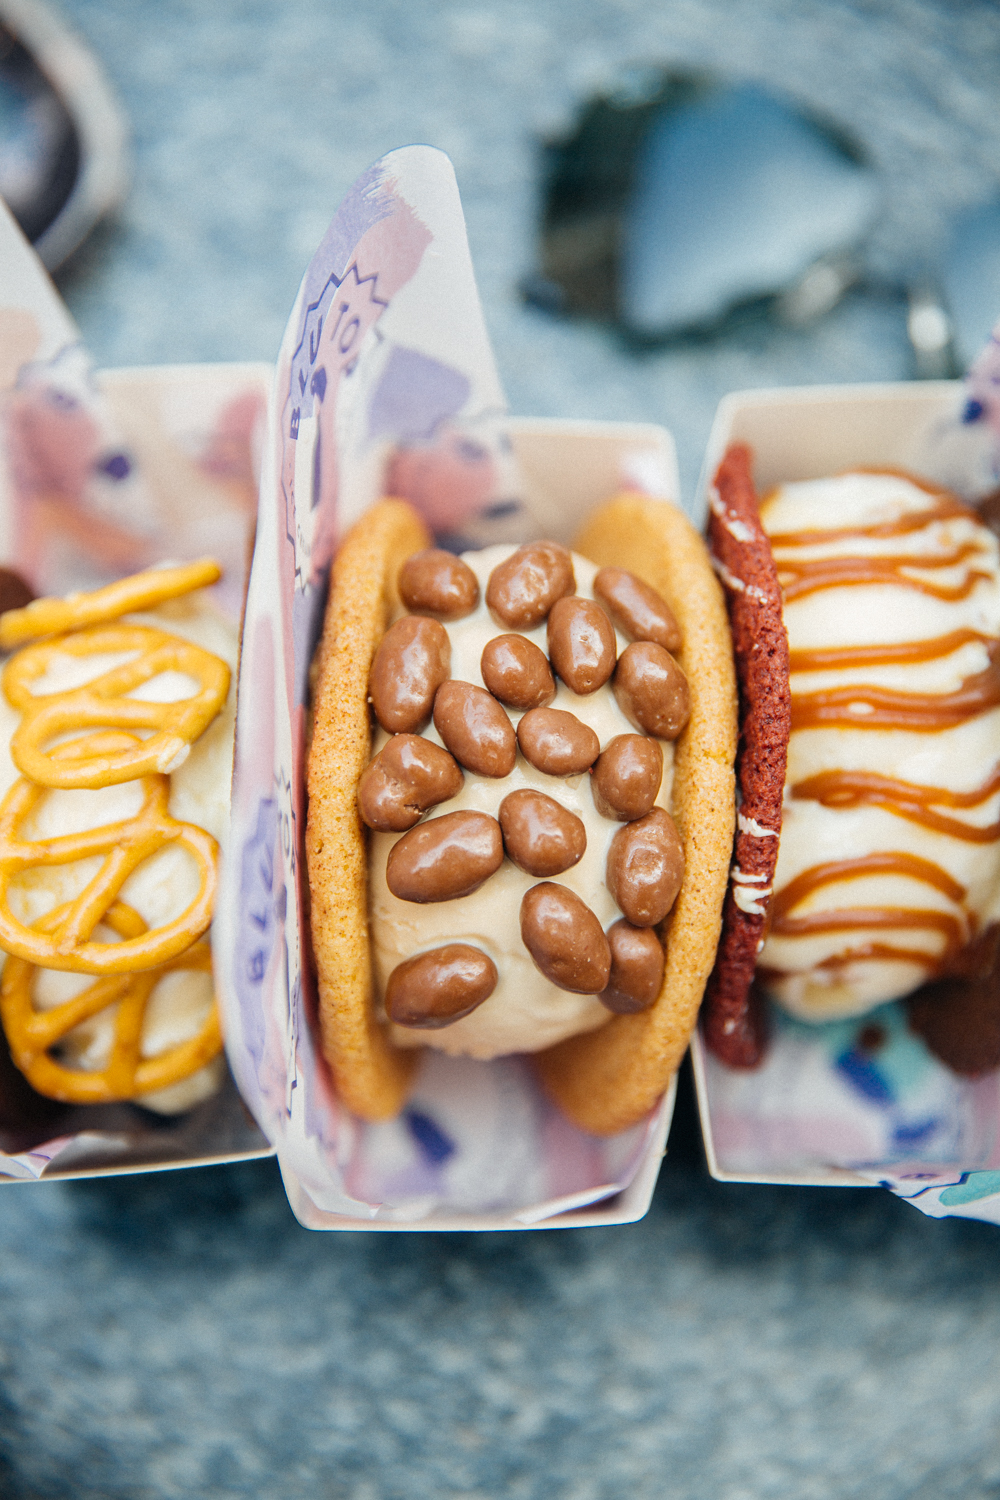 Ice-Cream-Sandwiches-in-London-14